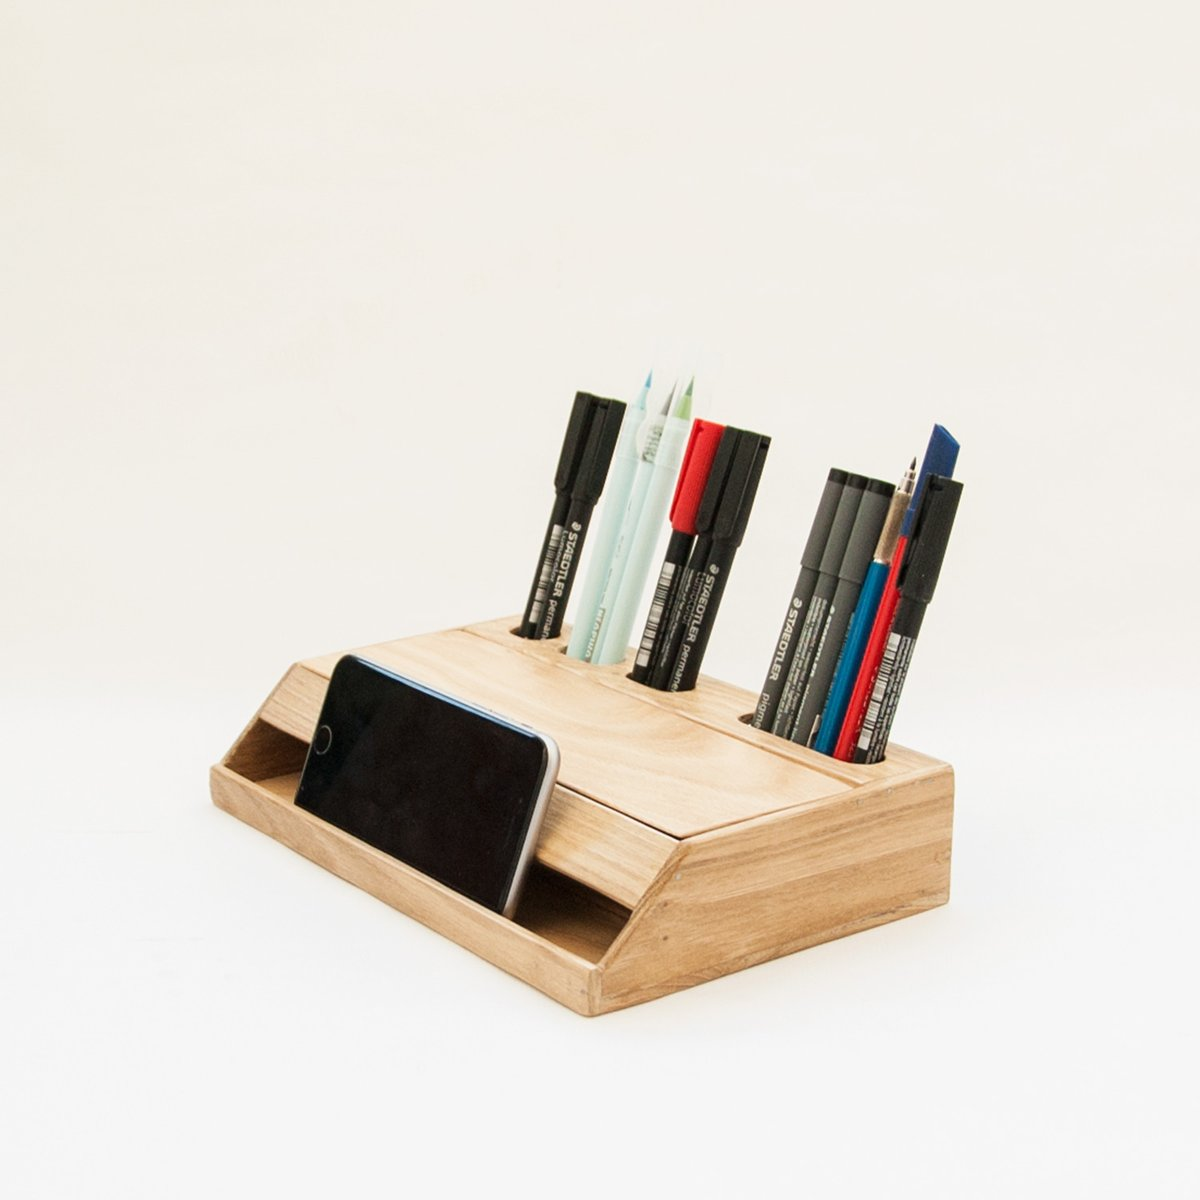 Desk Organizer Wood Handmade Estuche Wooden Desk Organizer And Smartphone